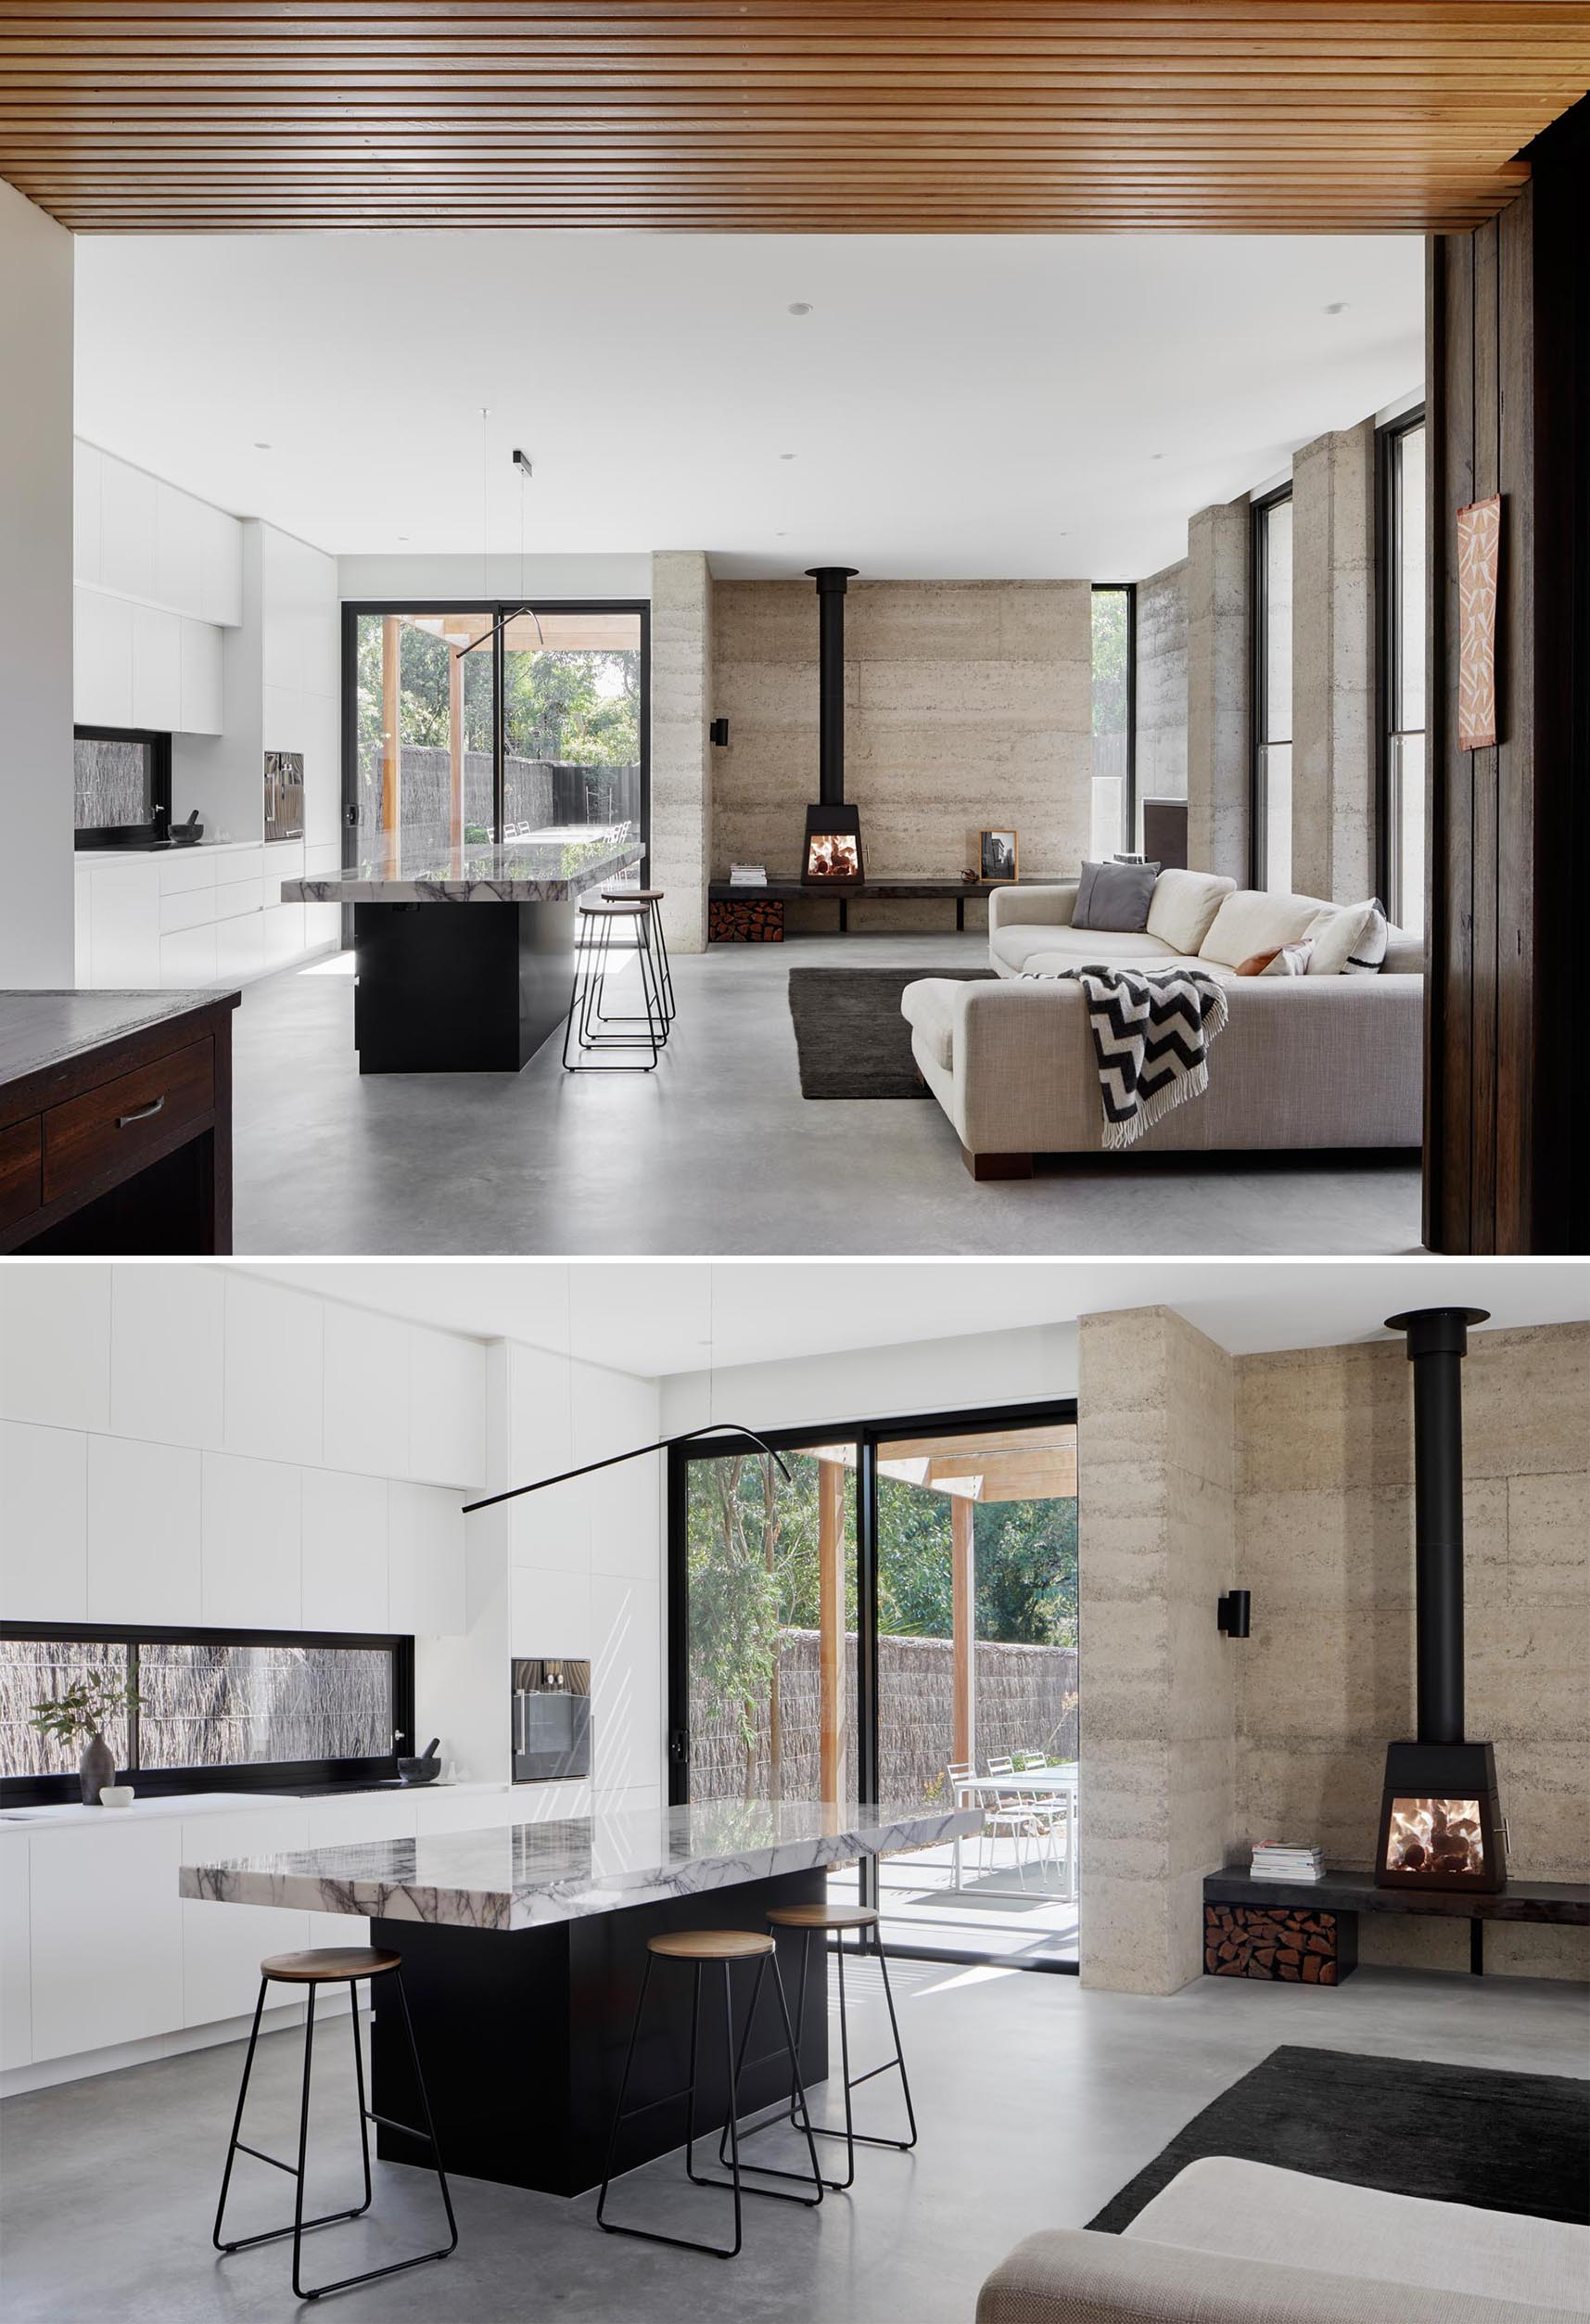 In this modern open plan living room and kitchen, there's a rammed earth wall behind the fireplace and concrete floors.